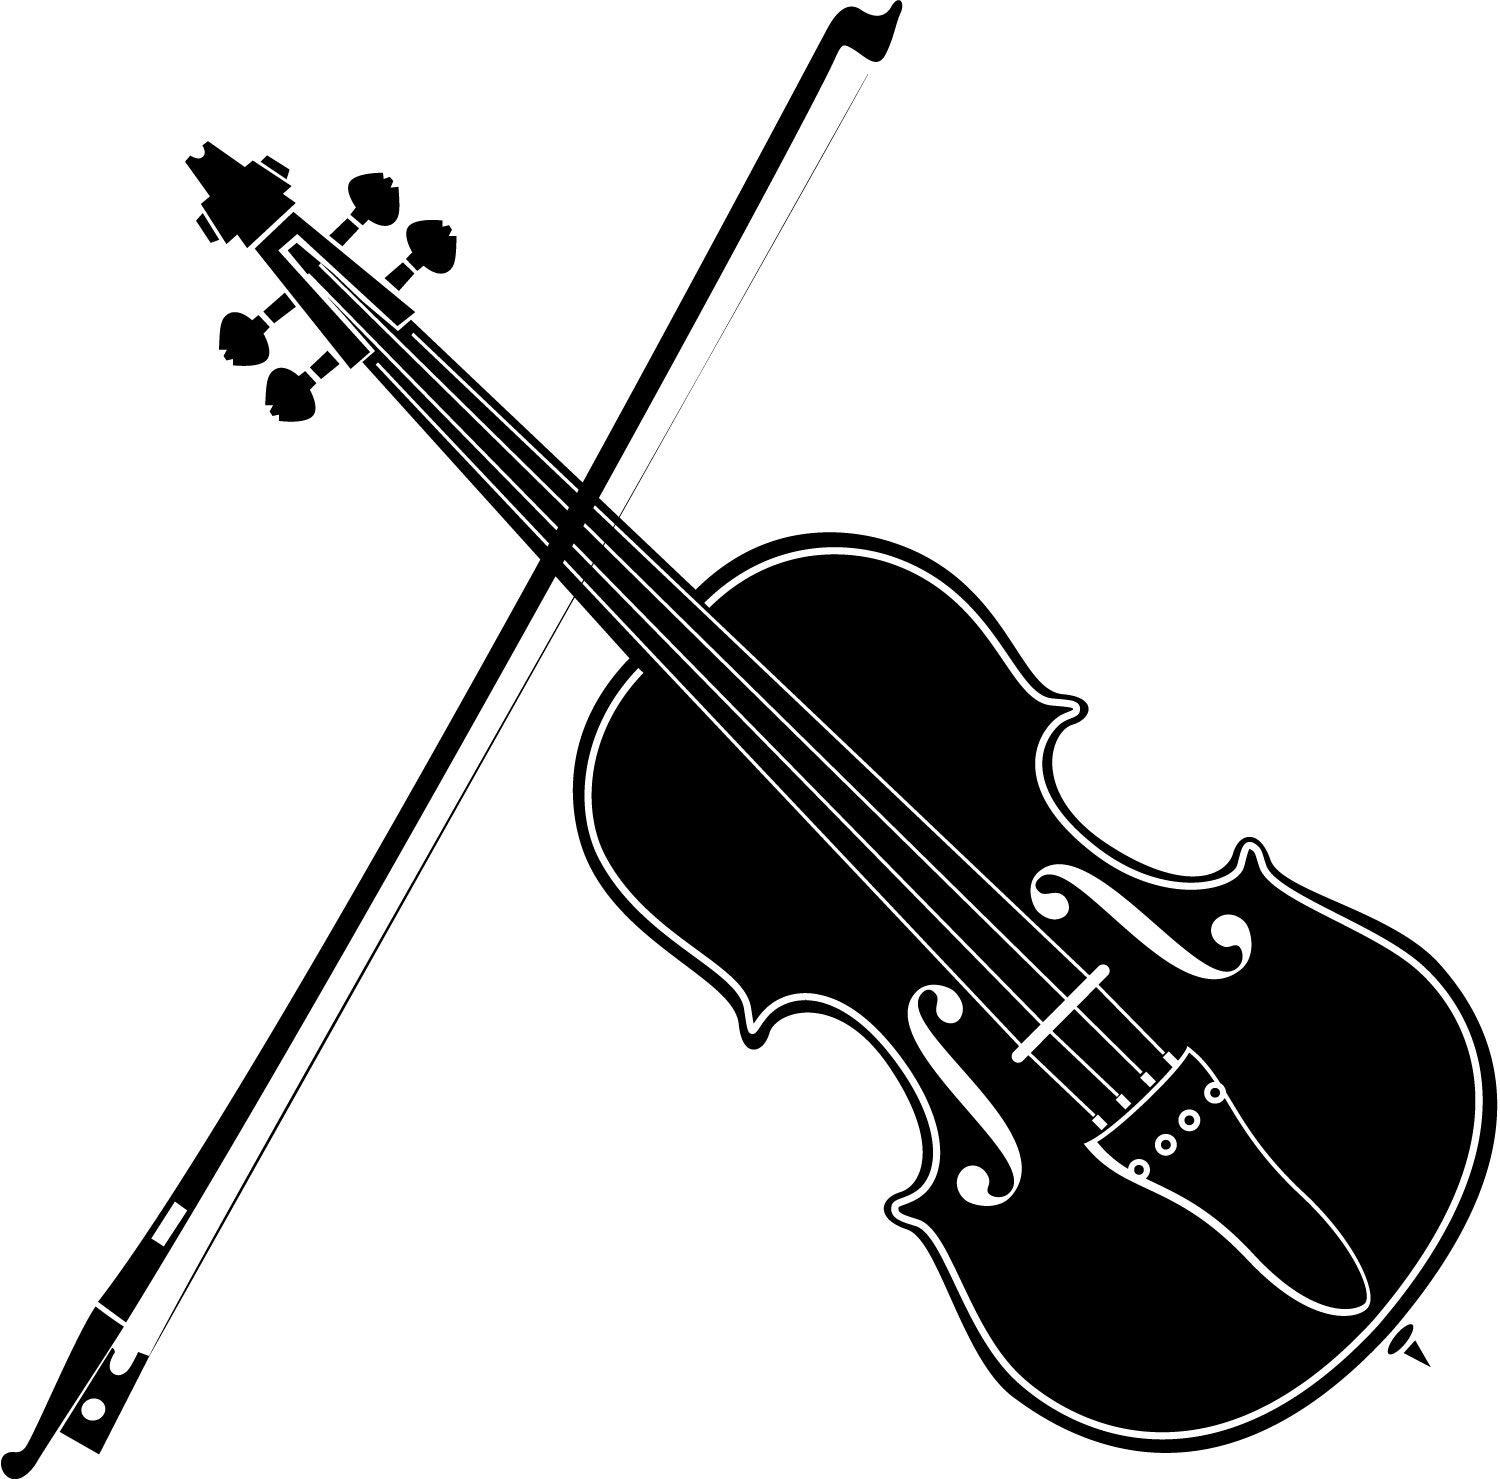 Violinn music note clipart clip art black and white download Playing Violin Clipart Black And White | Clipart Panda - Free ... clip art black and white download